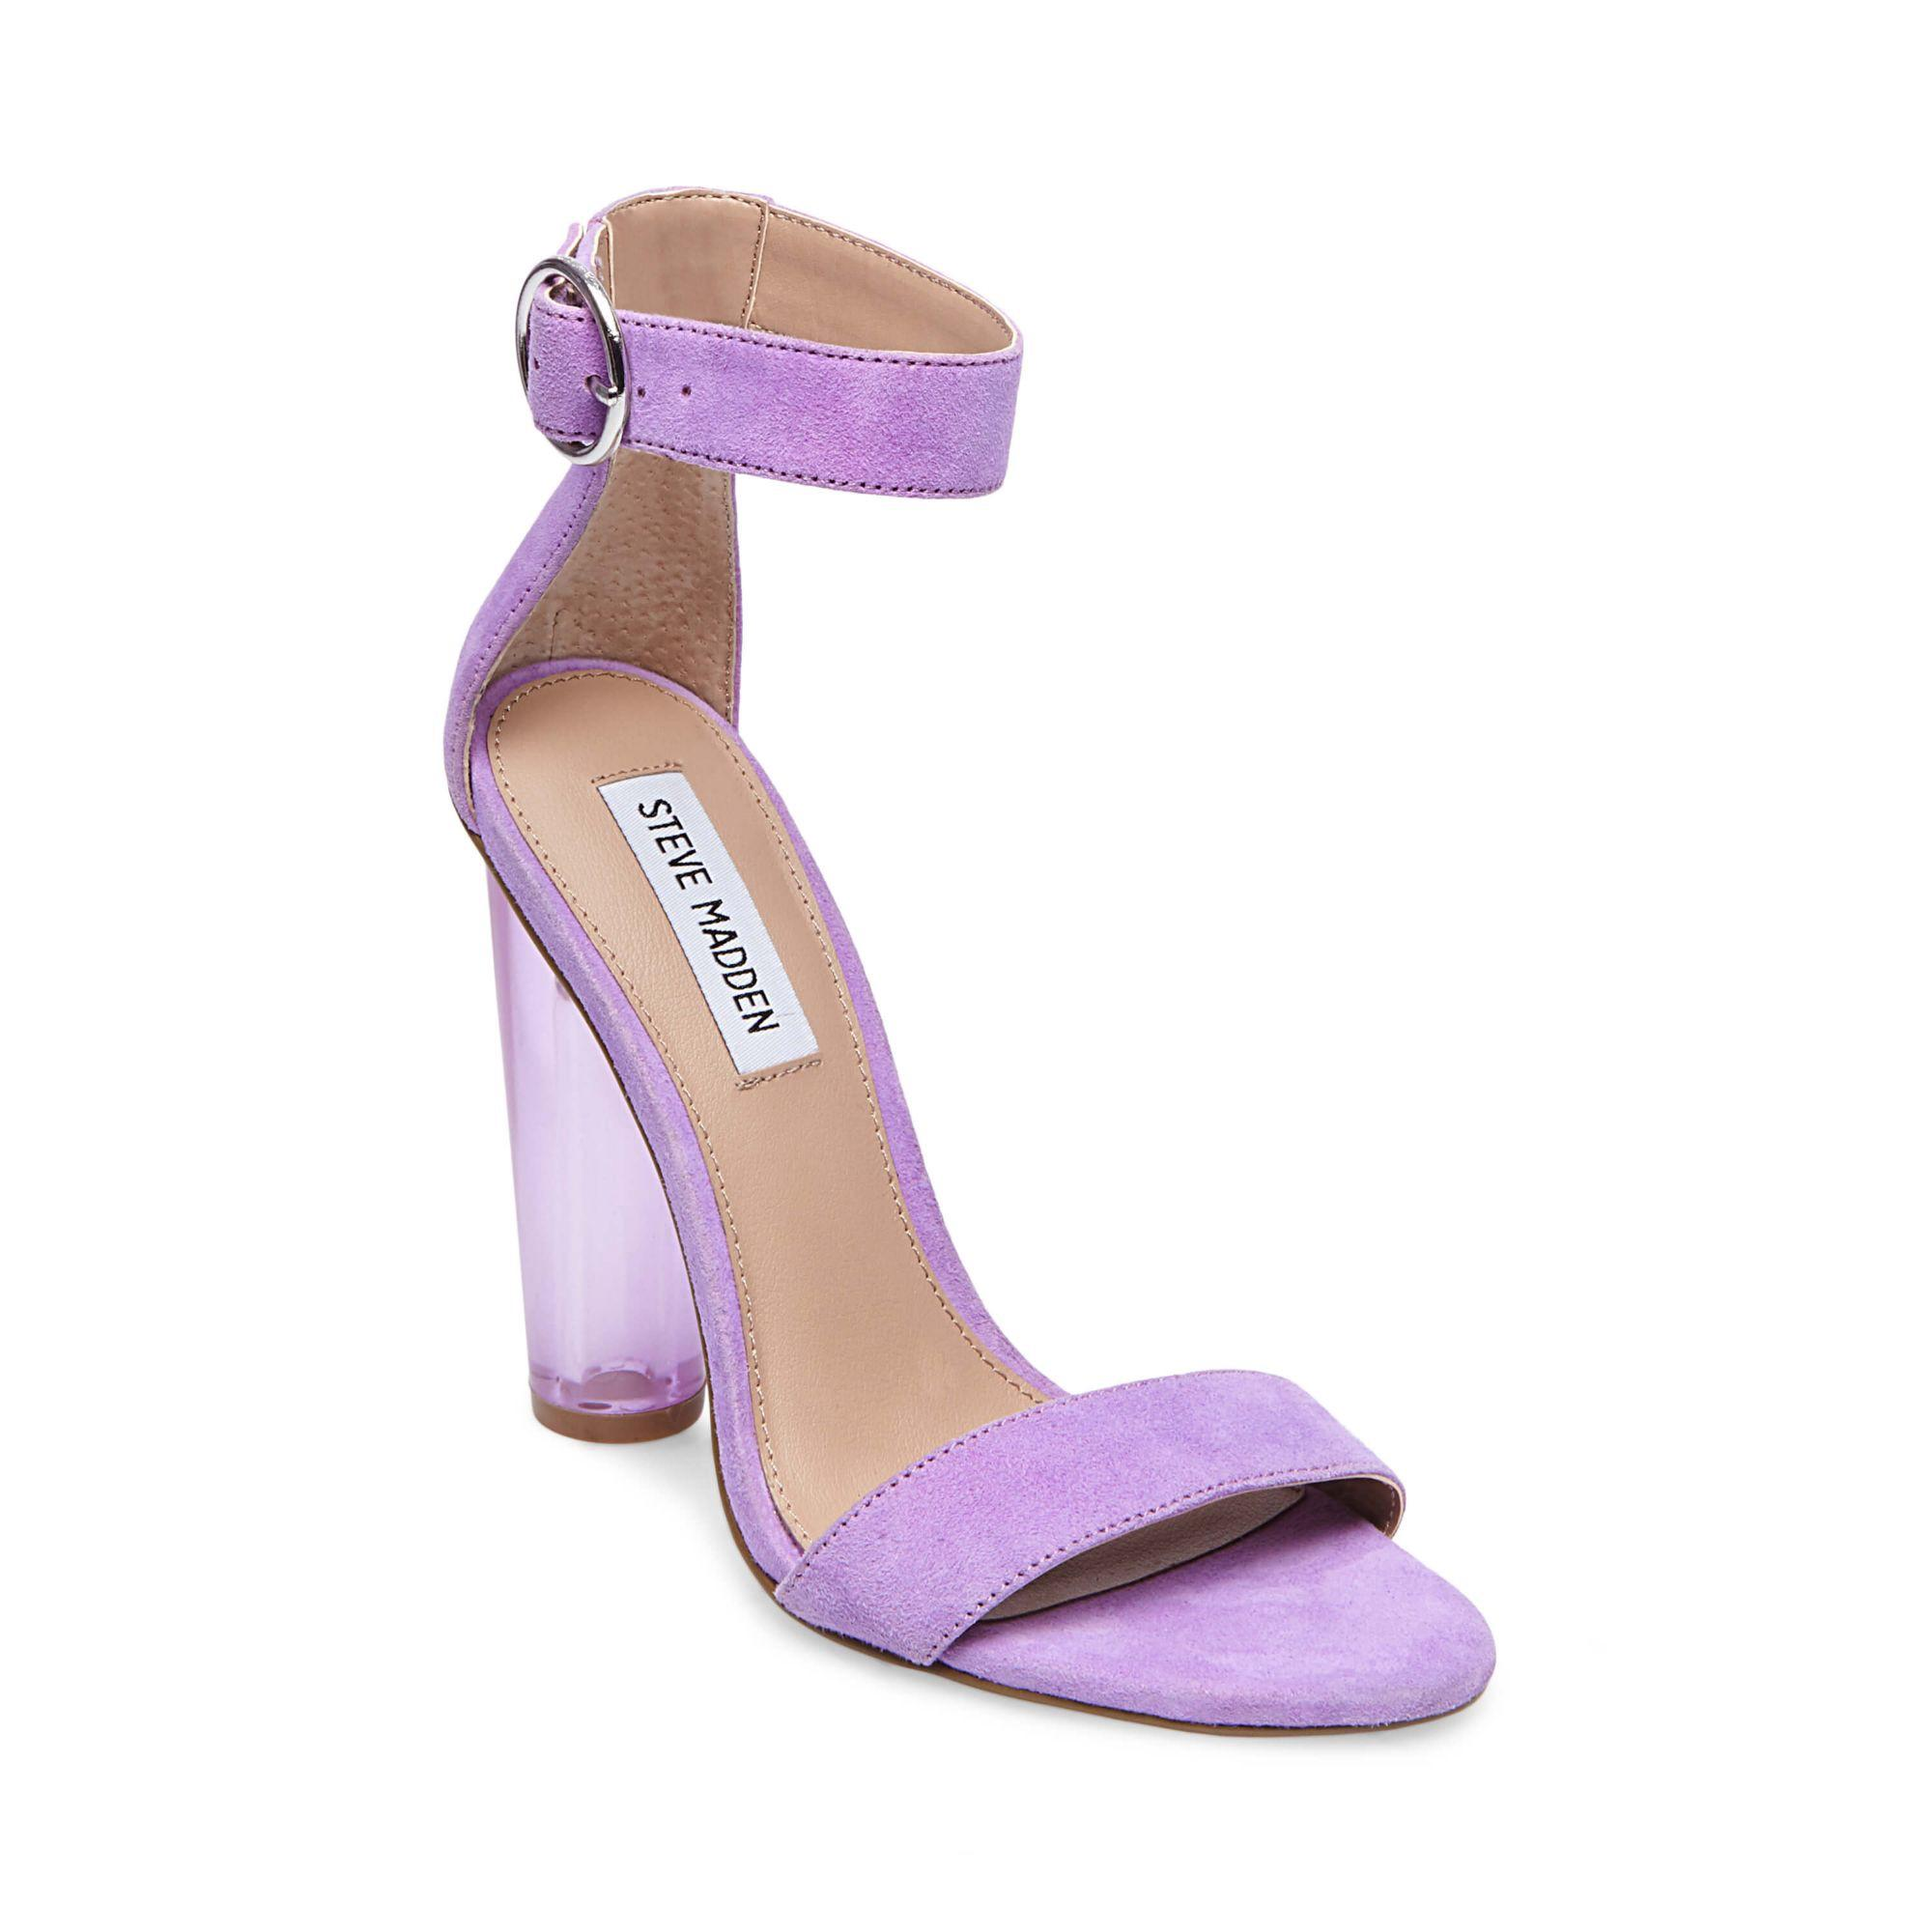 be90a75ceaf Teaser Sandal - Purple